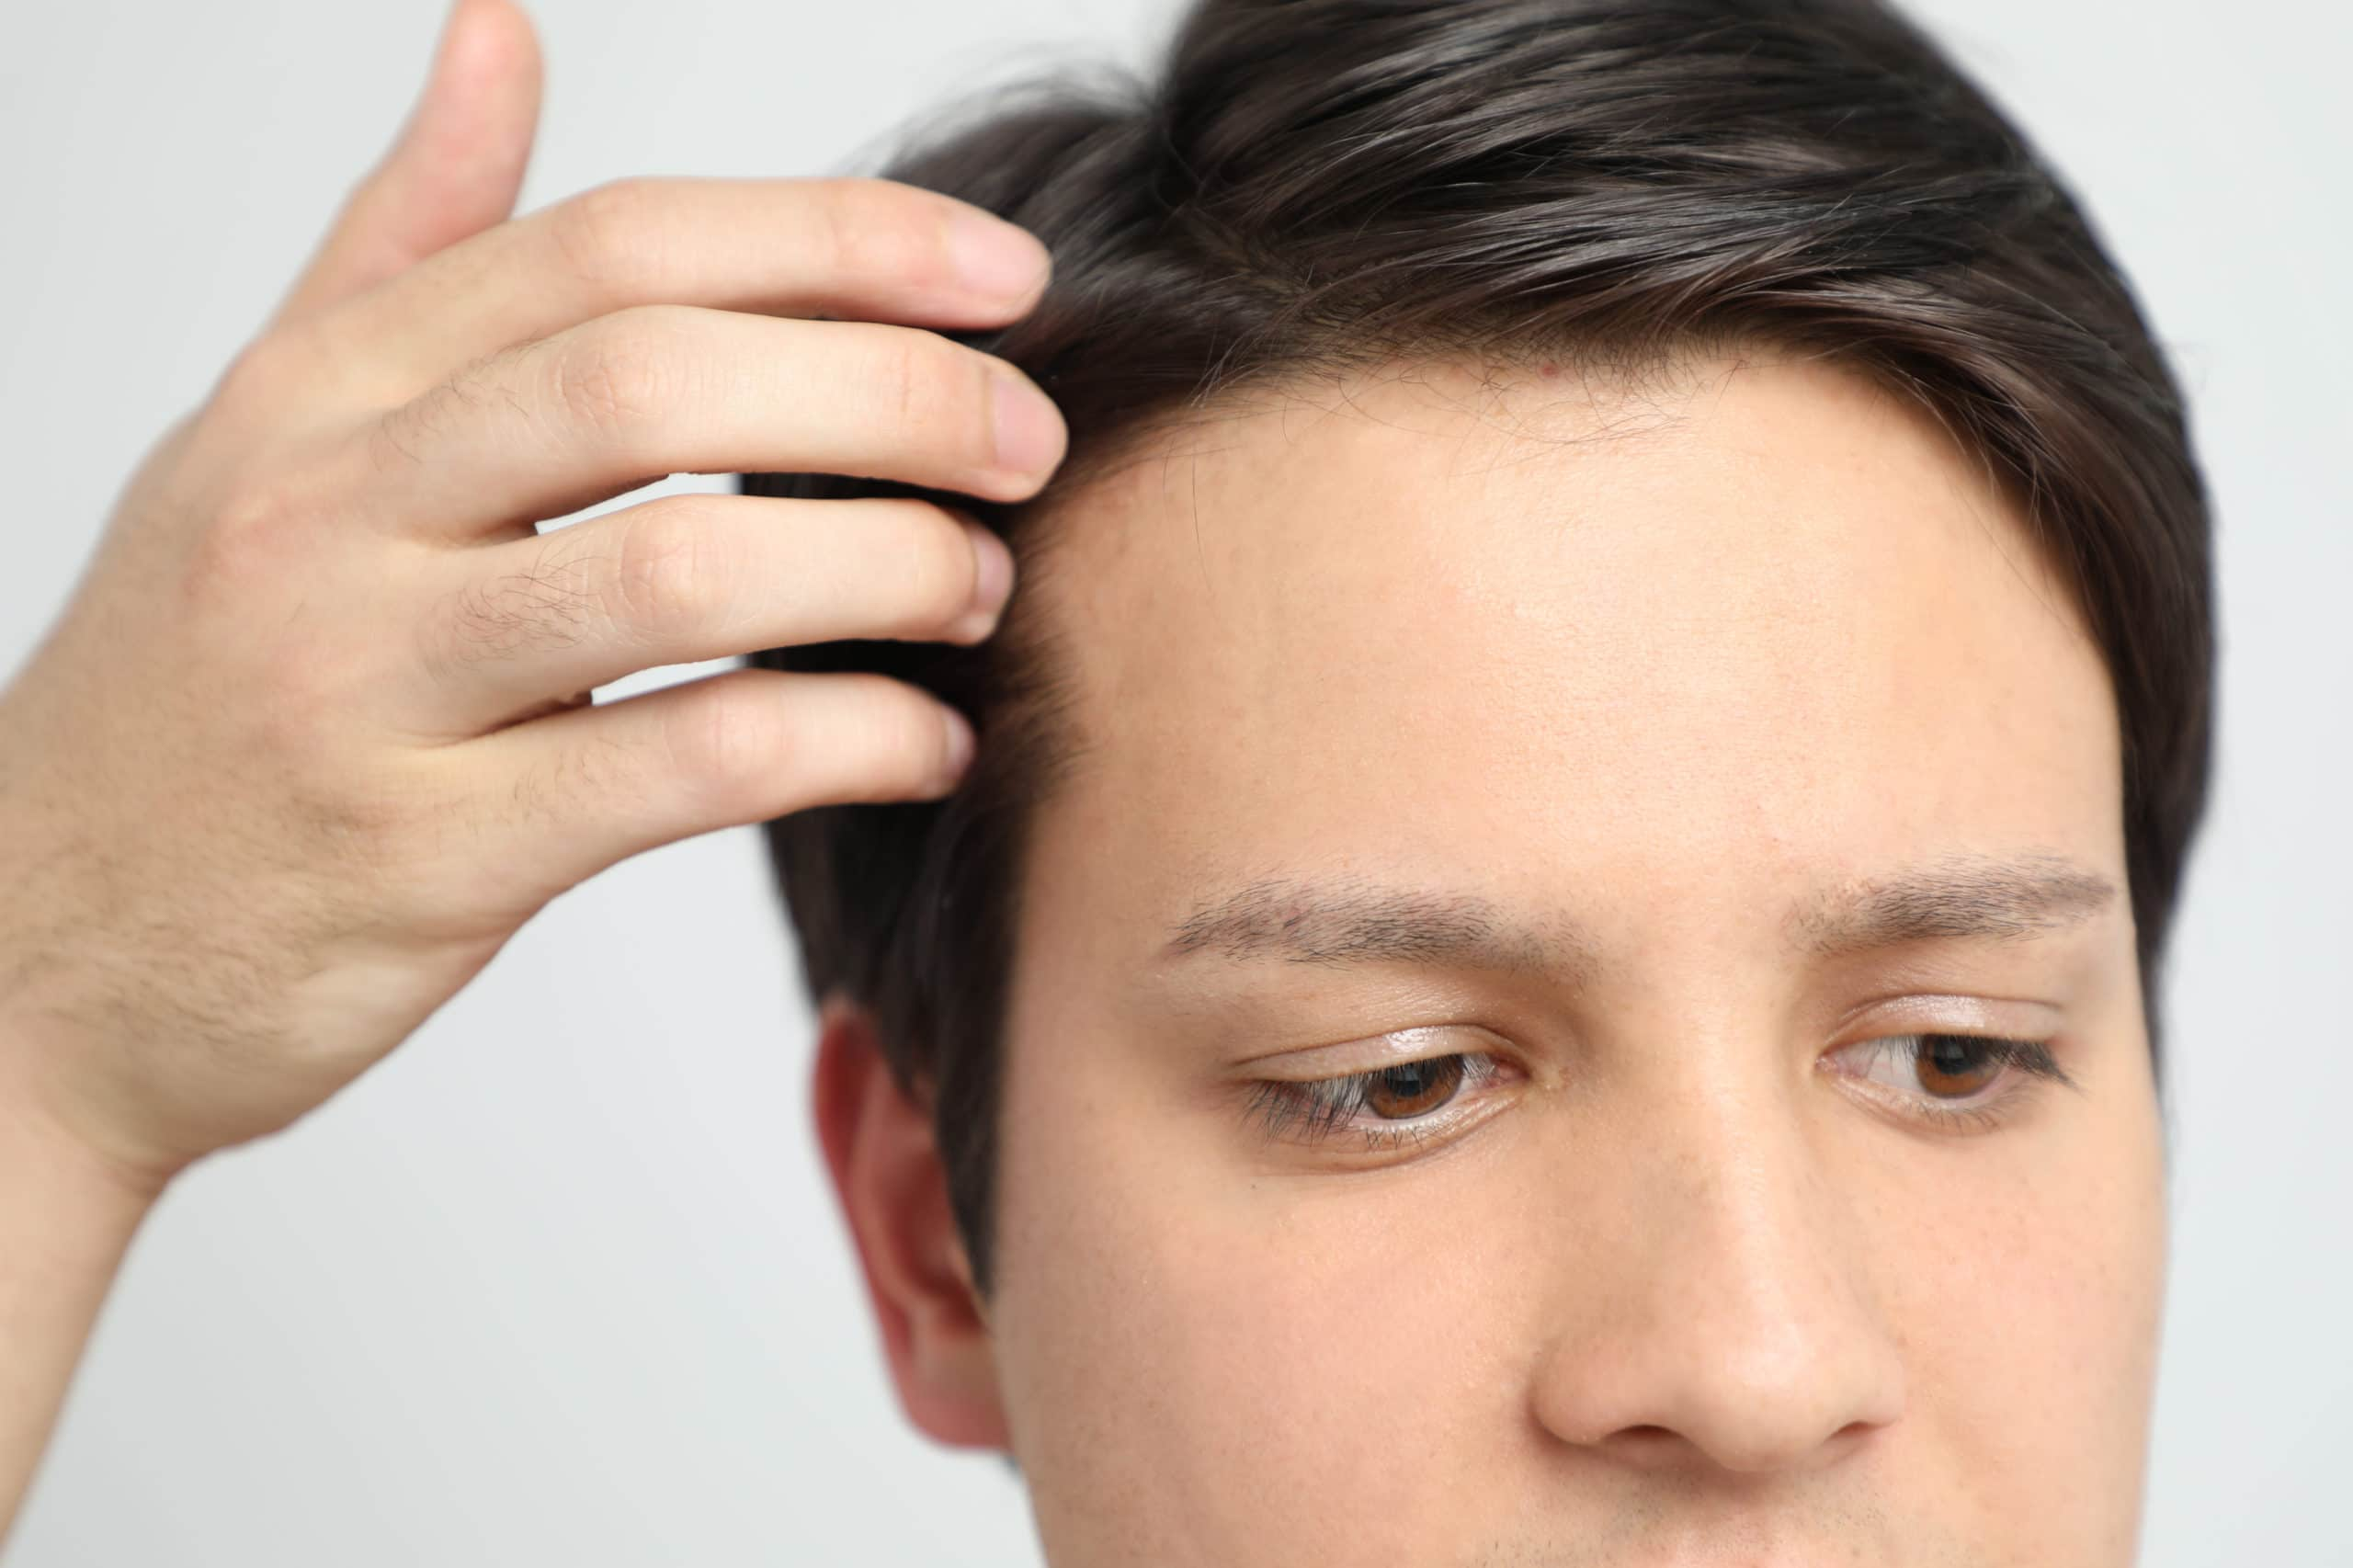 Man touching full head of hair